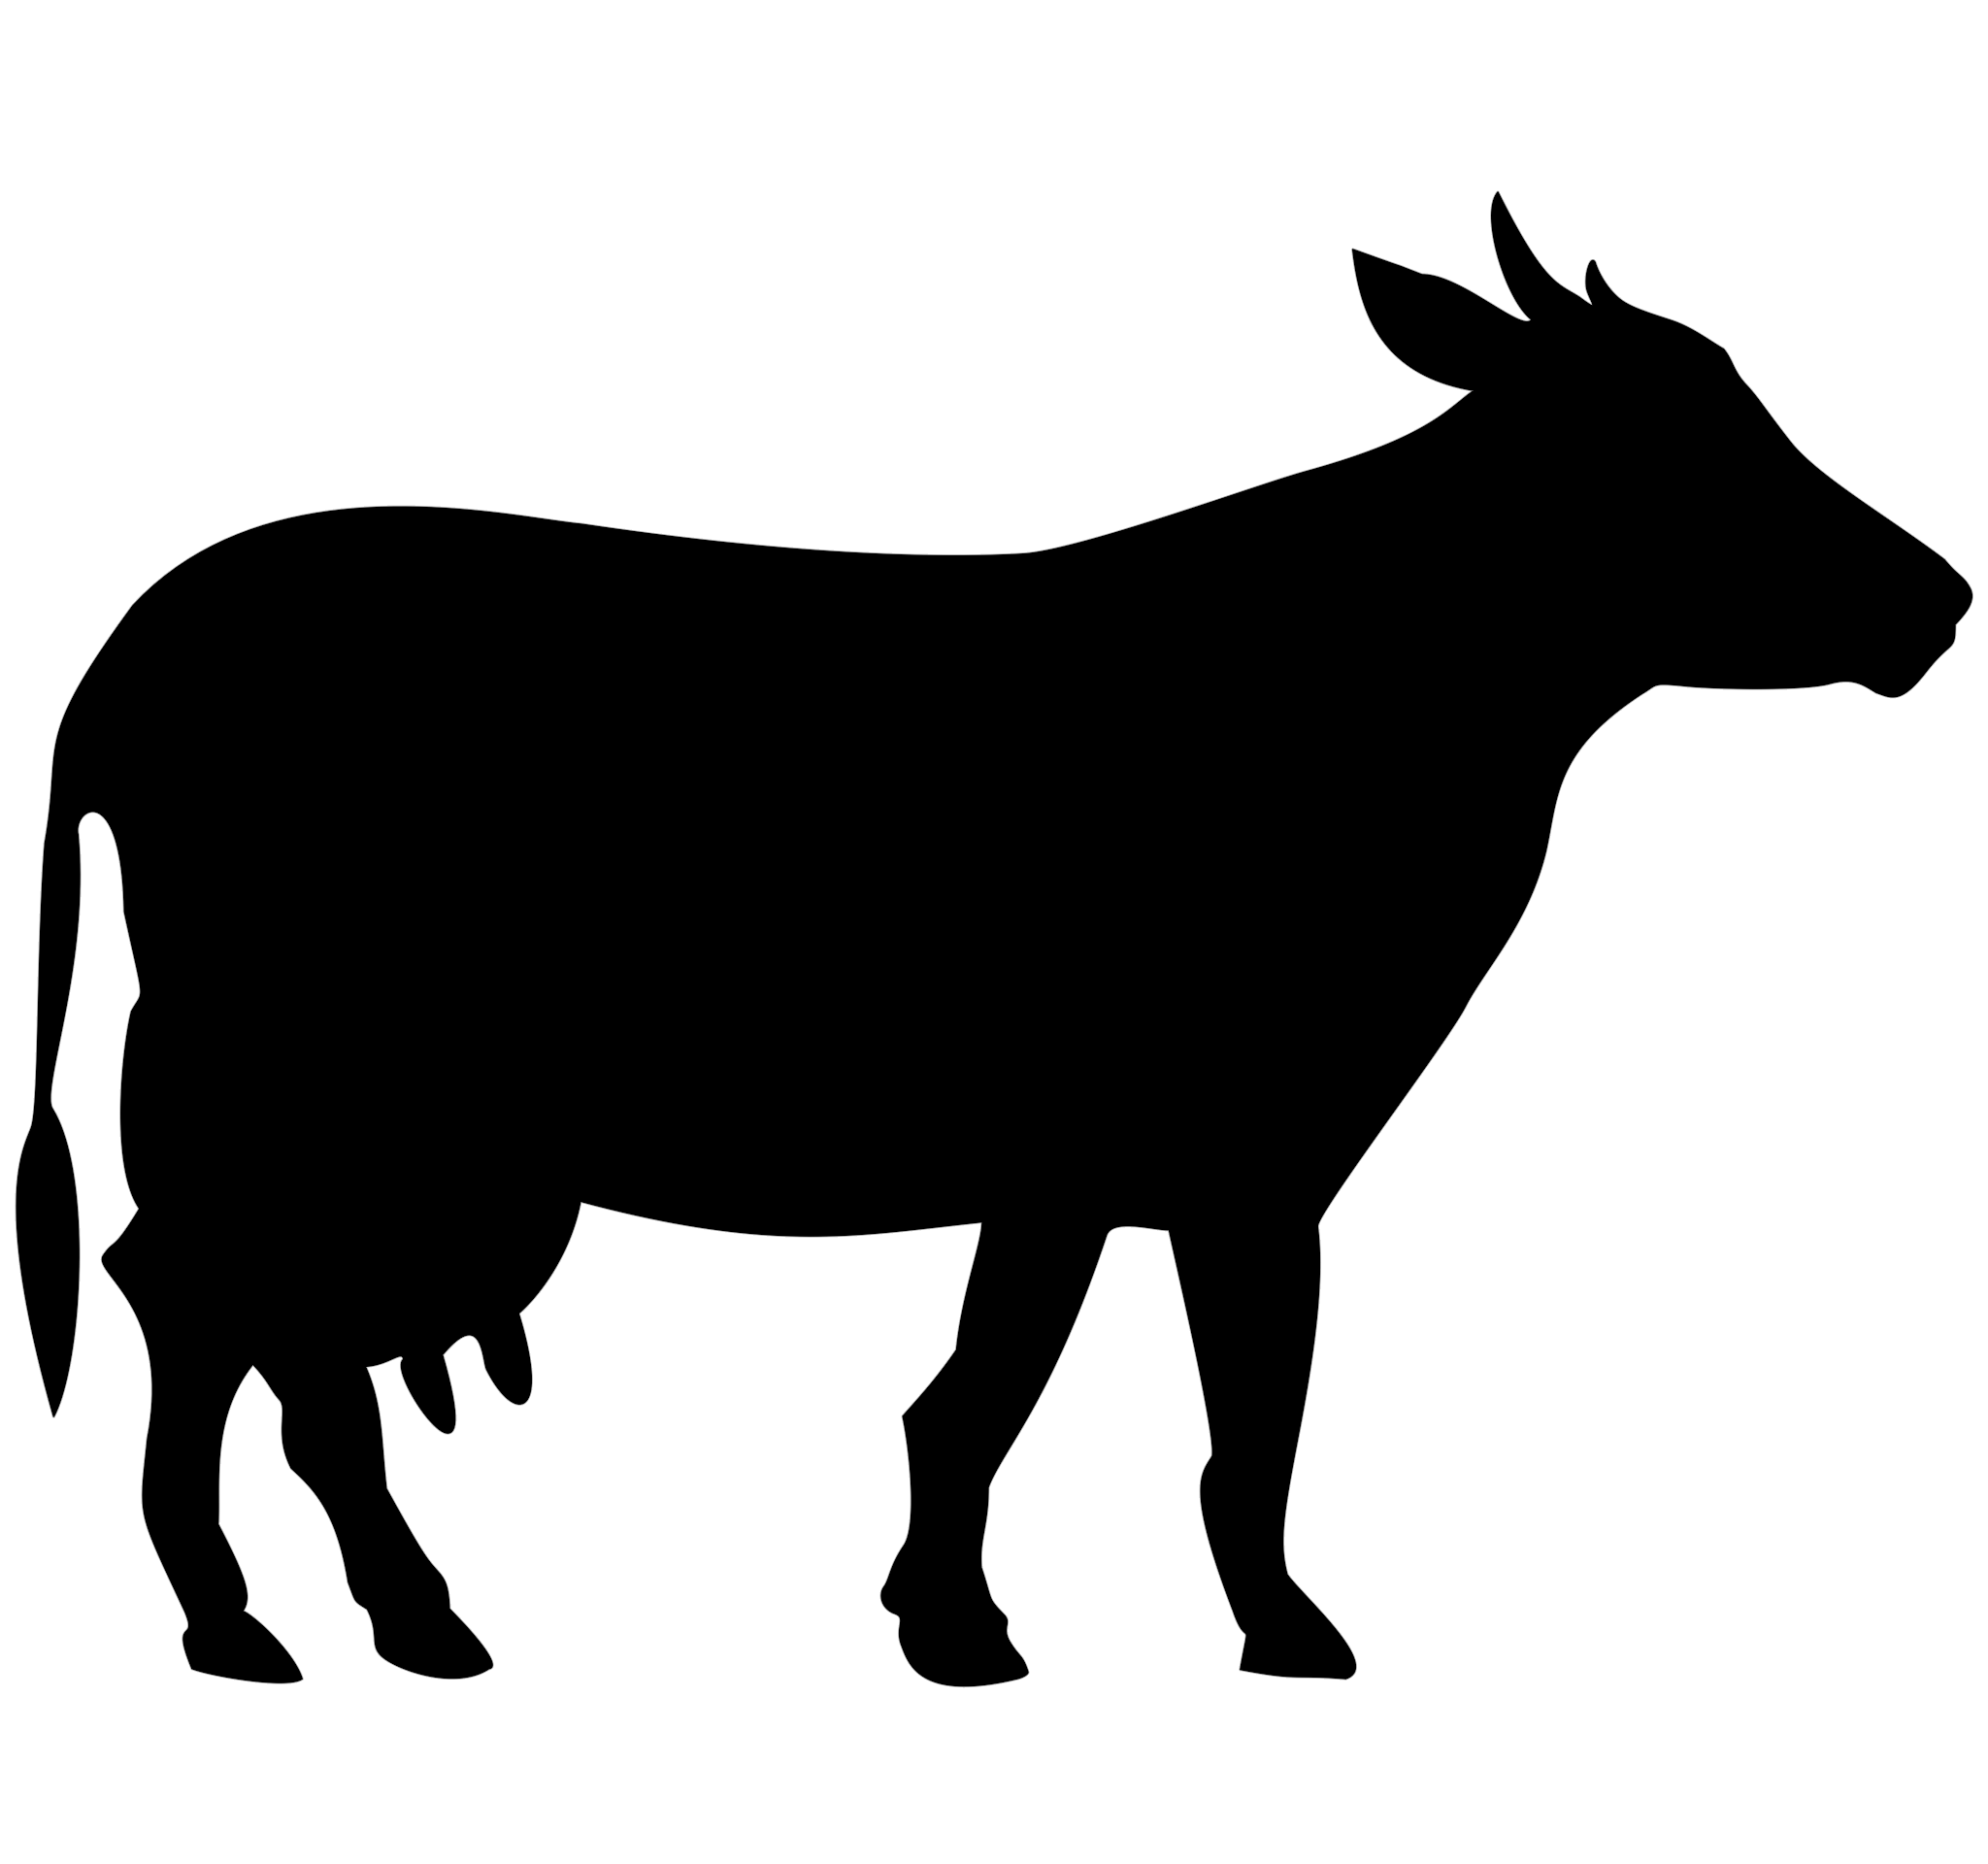 Cow Siluete black